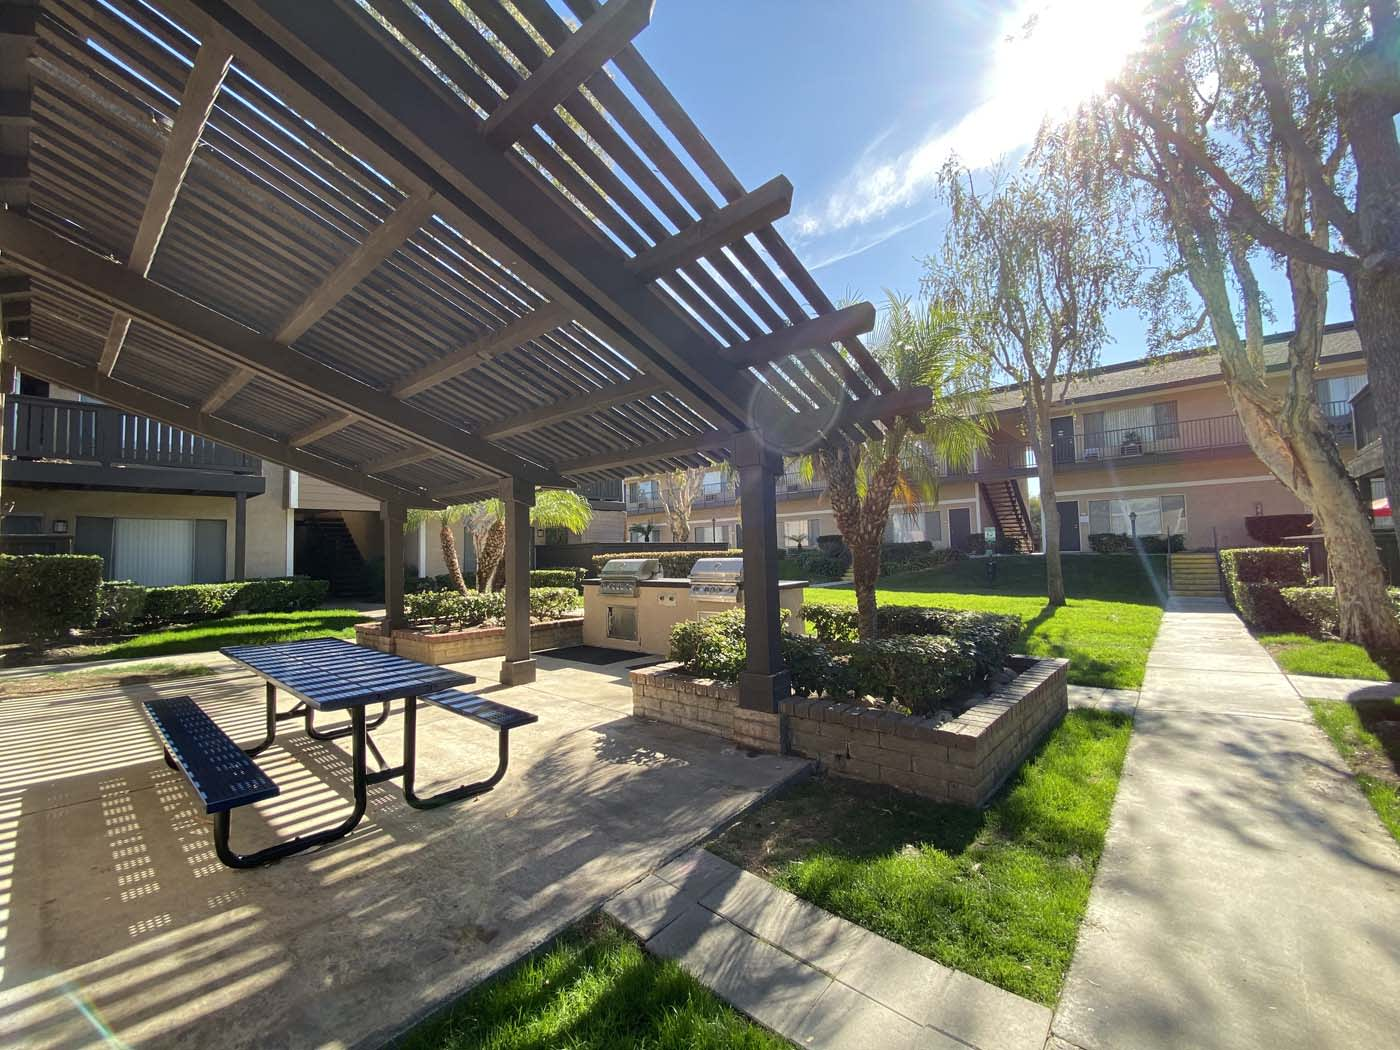 Courtyard With Bbq Area And Gardens at Stoneridge Apartment, Upland, California